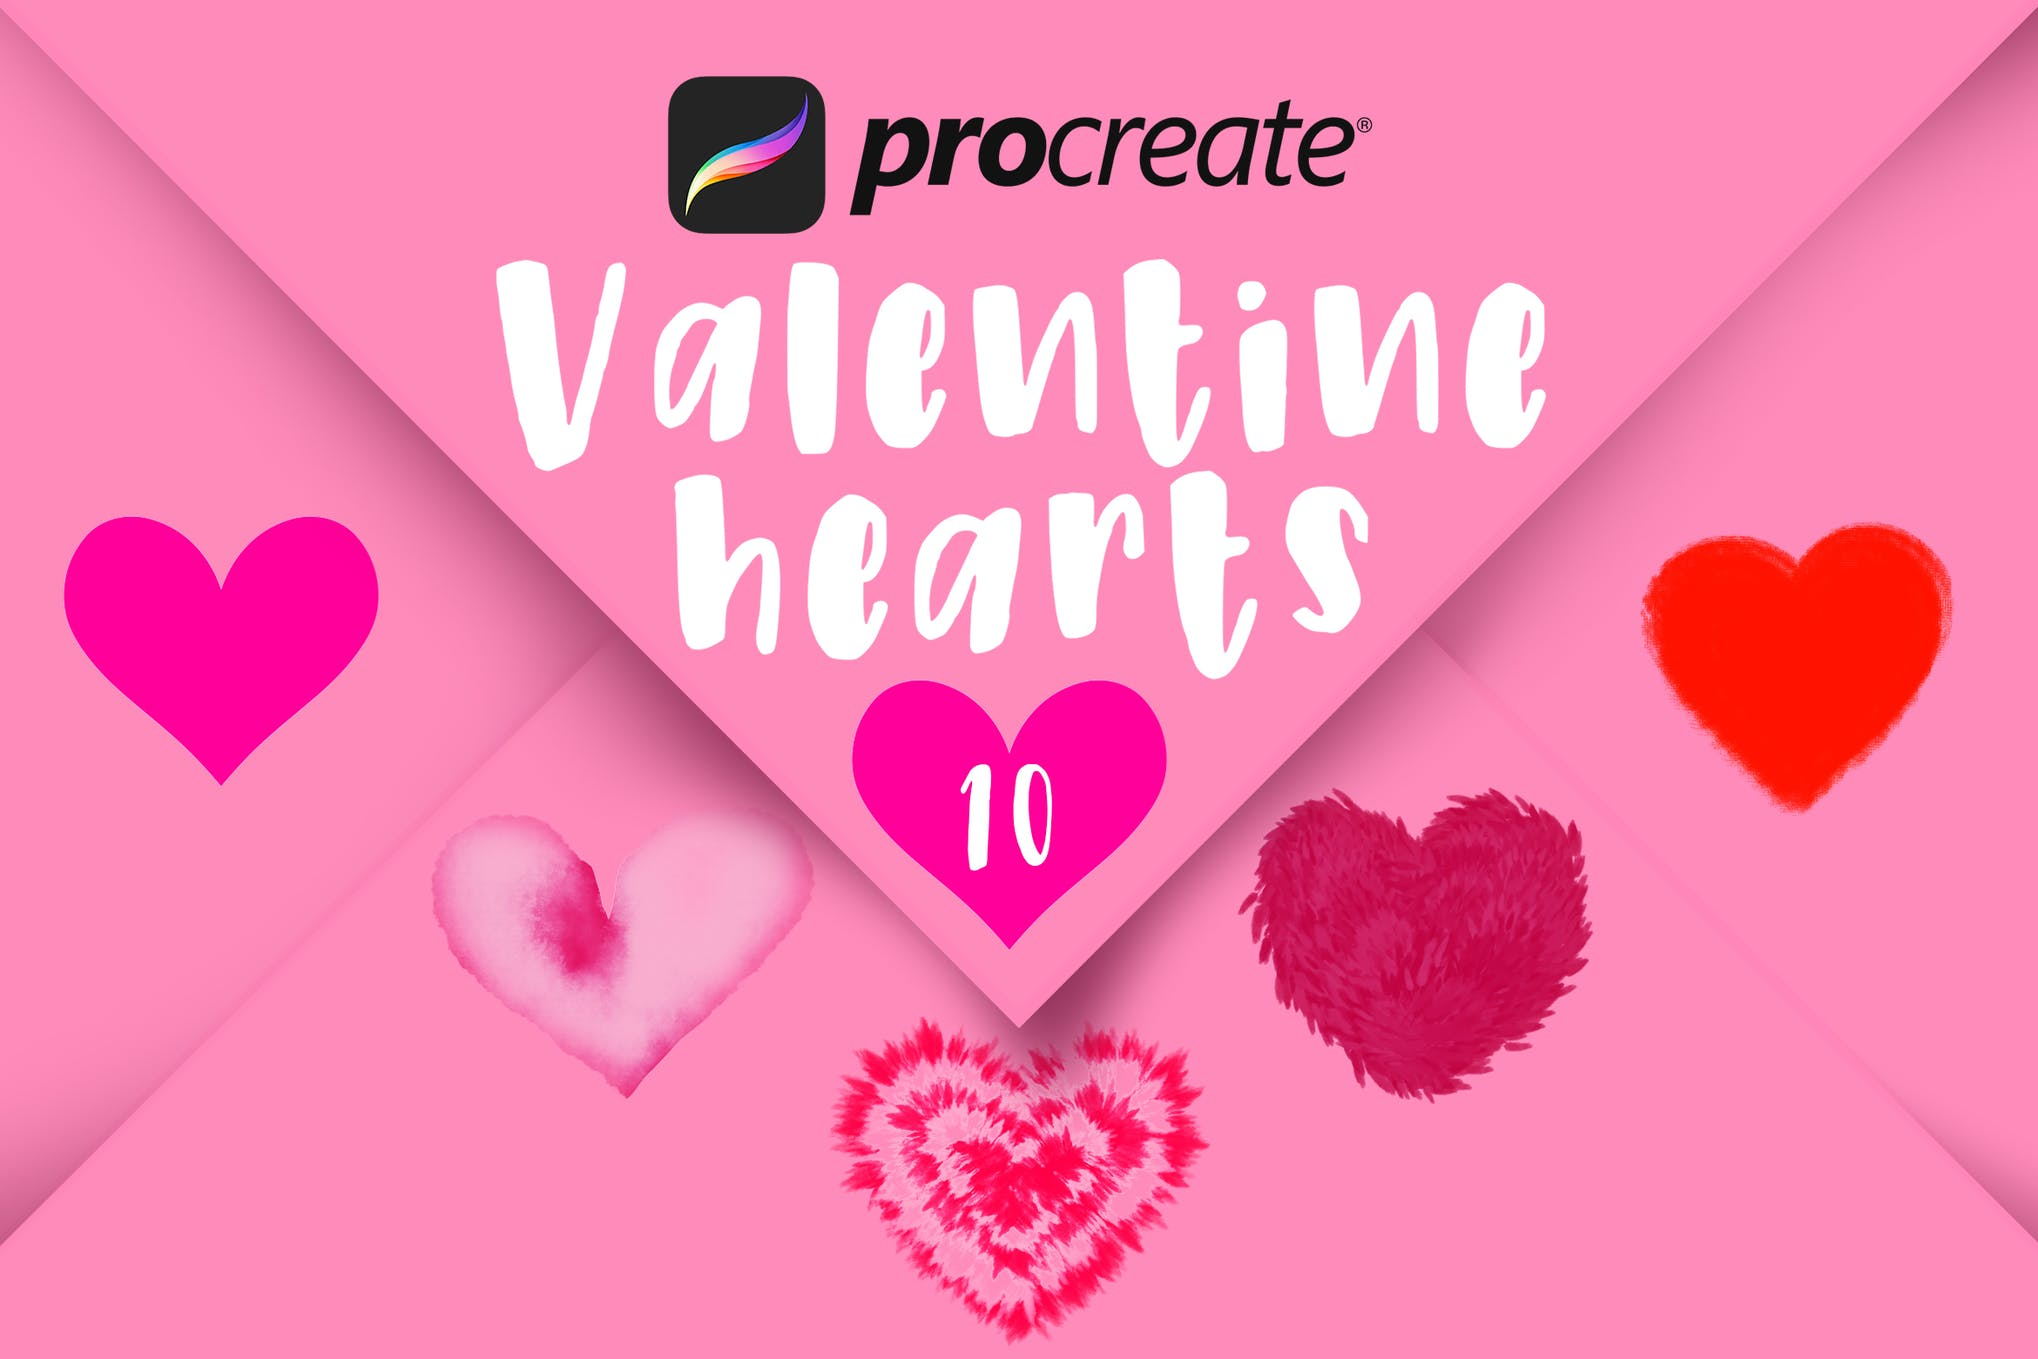 https://elements.envato.com/procreate-valentine-hearts-stamp-brushes-BRRY9F9